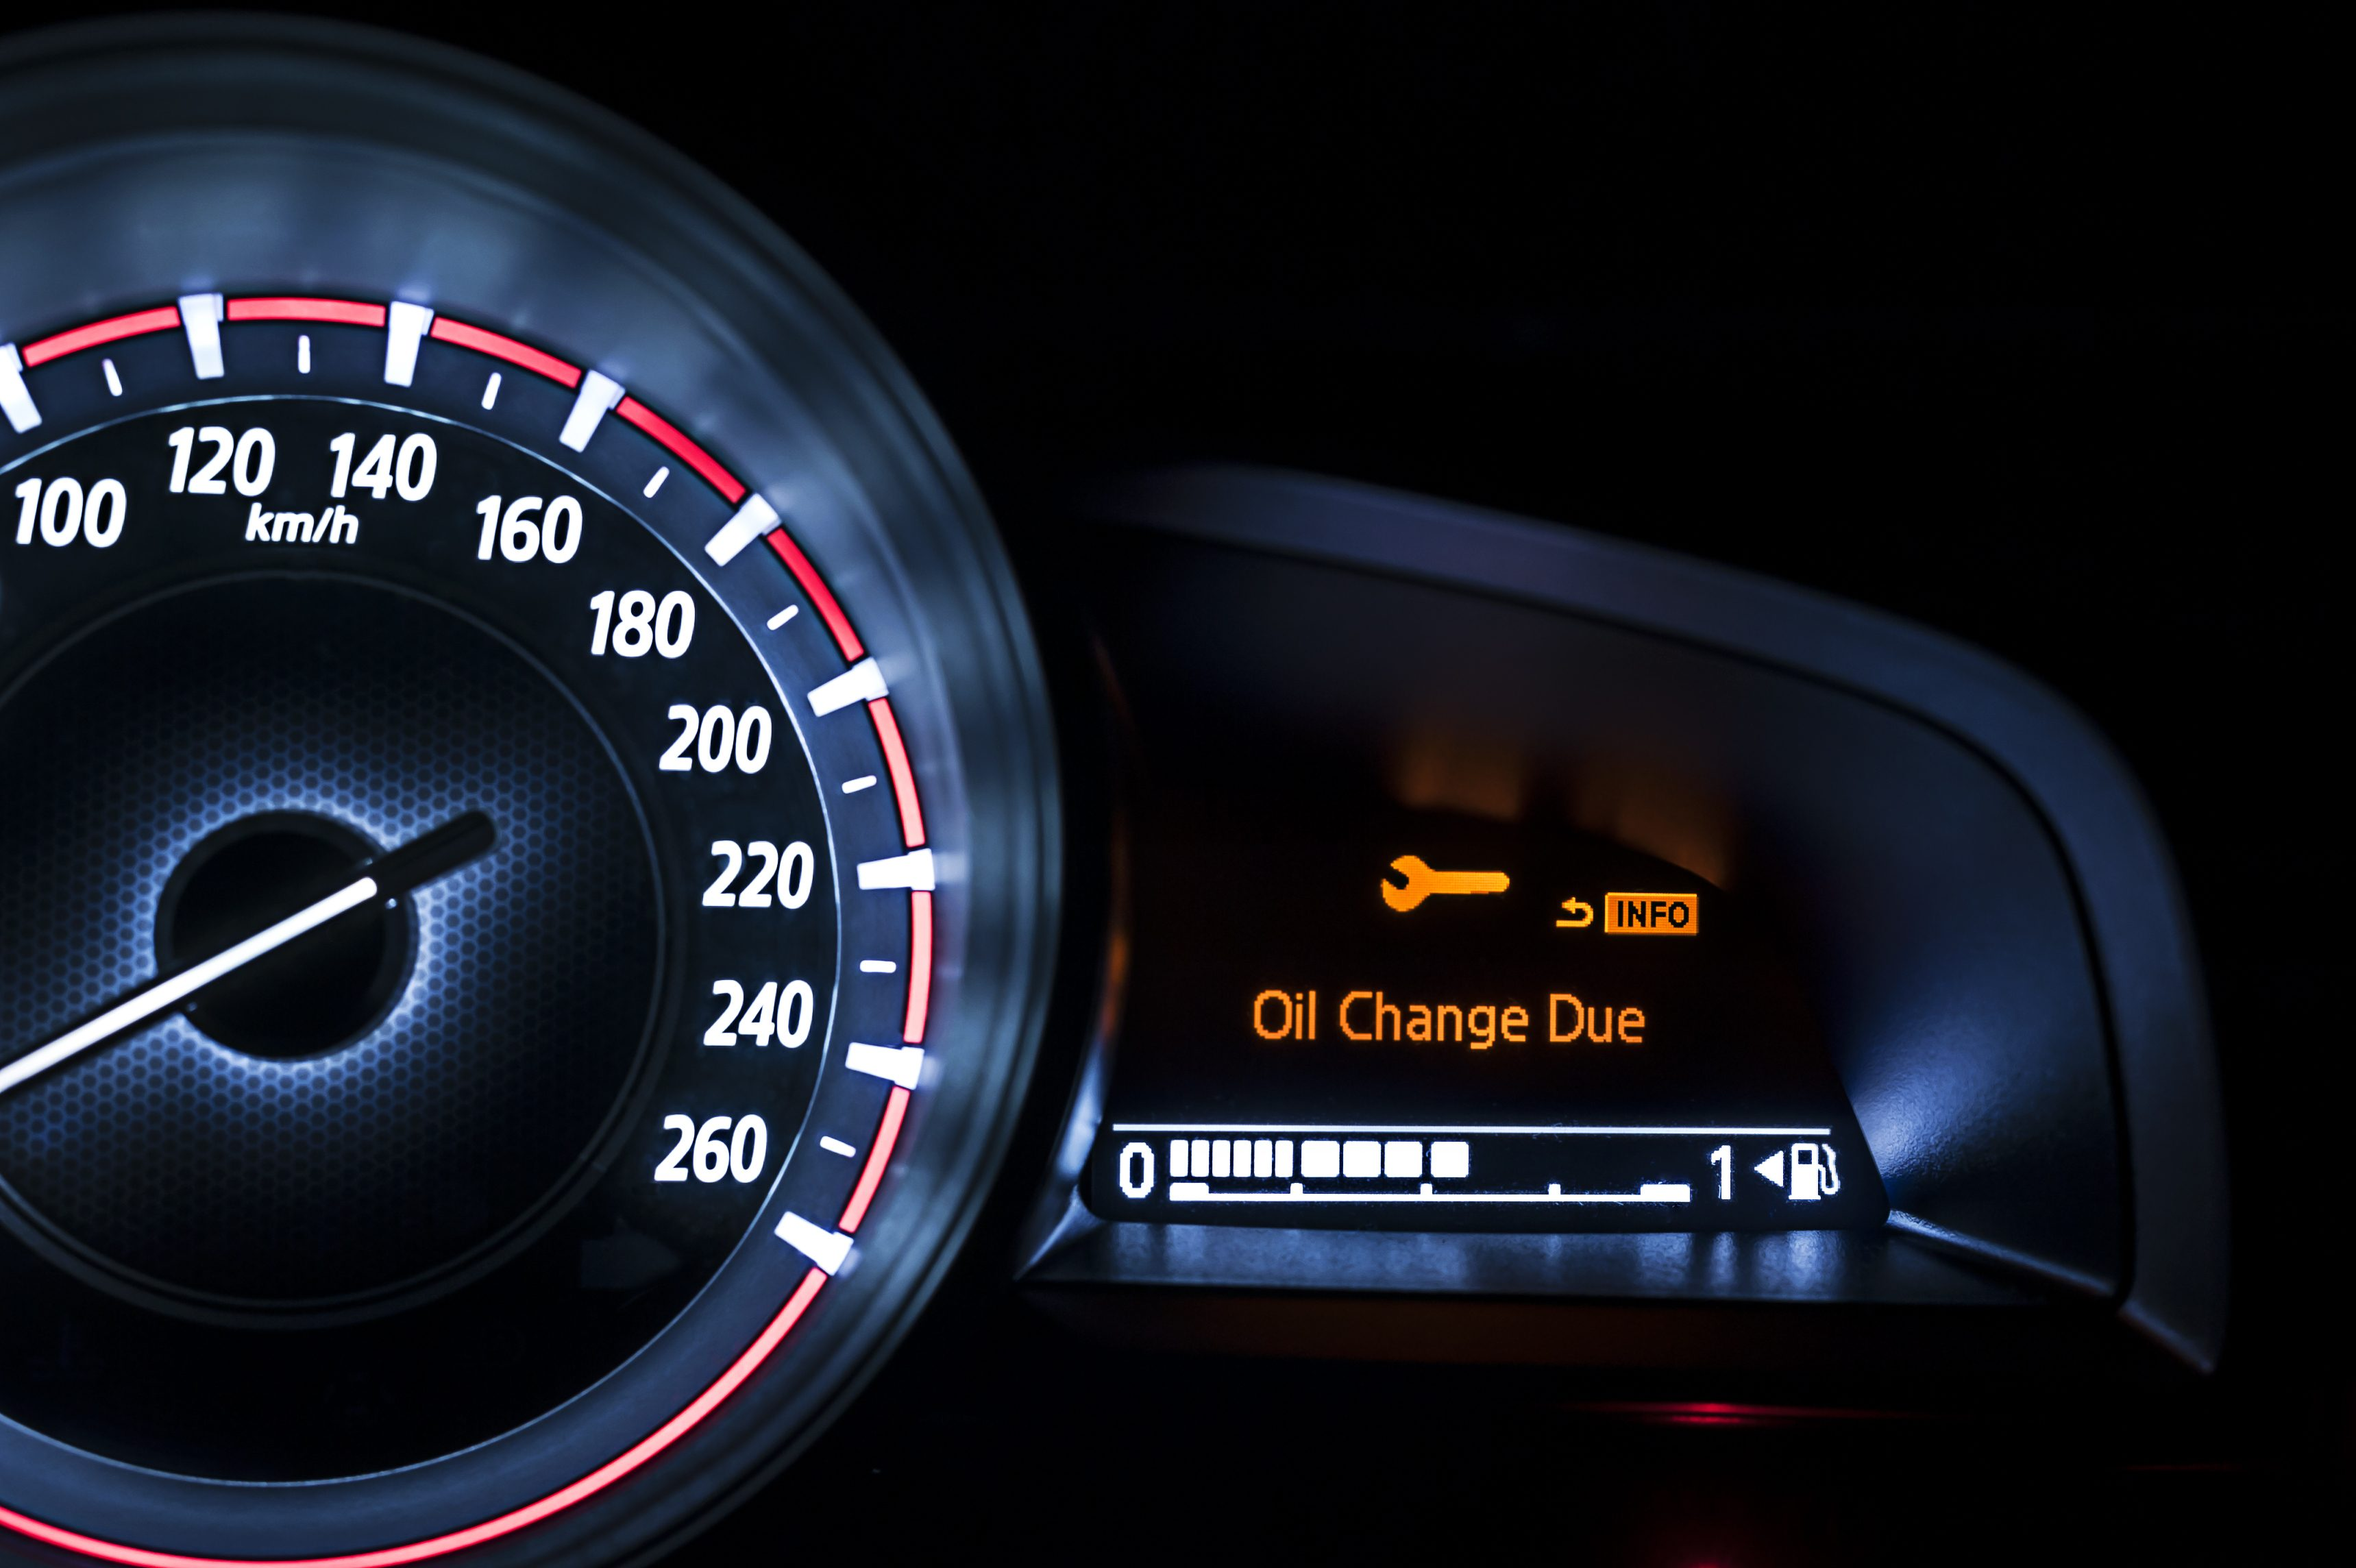 Car speedometer with information display - Oil Change Due Info